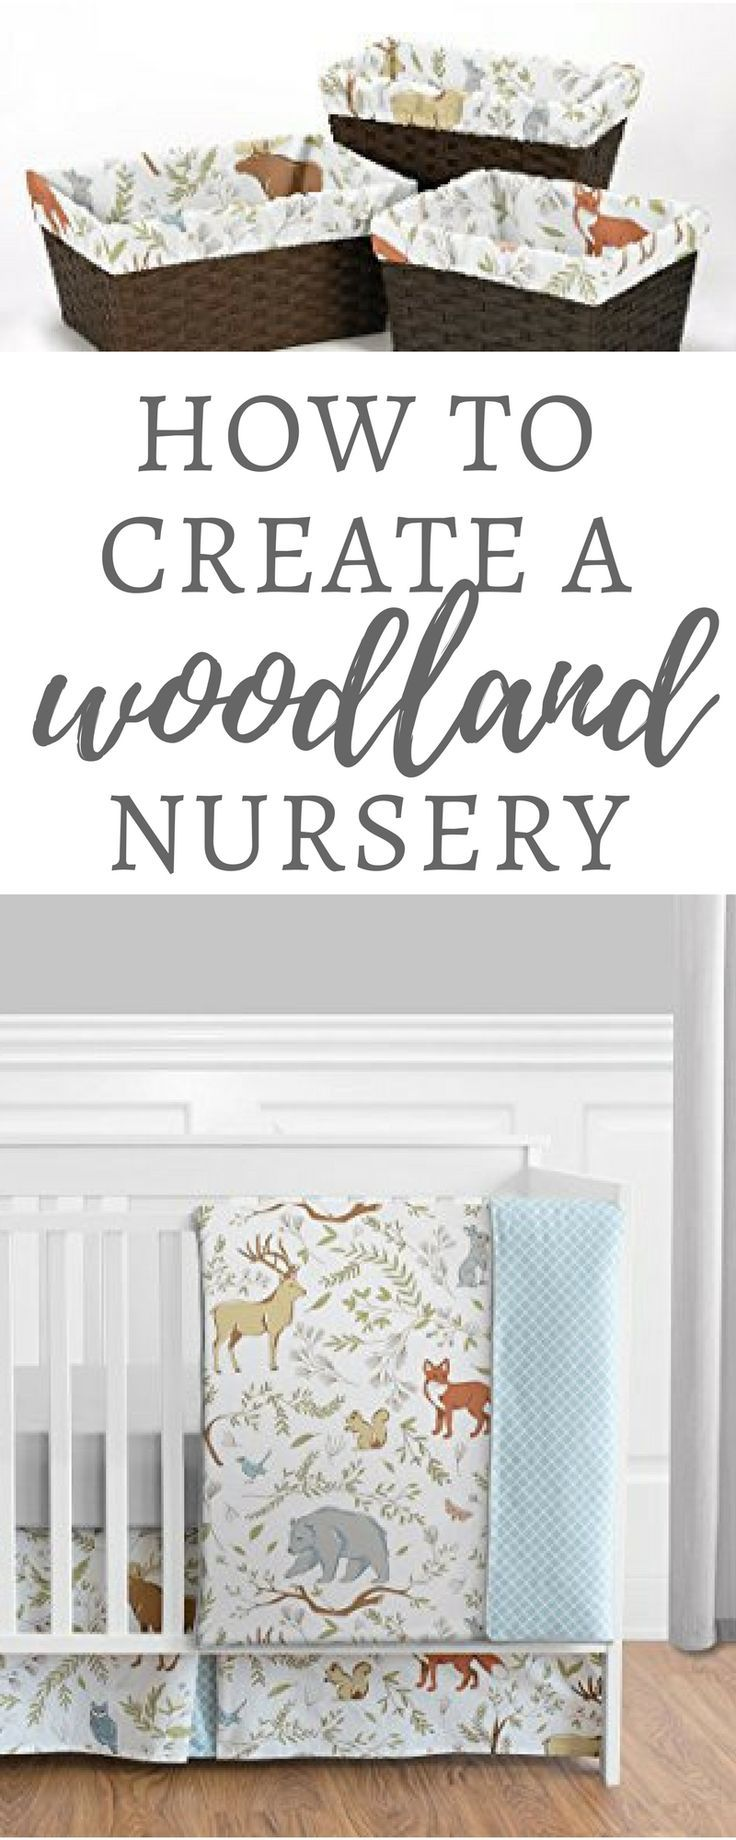 Nursery Ideas! <3 How to Create a Woodland Nursery - Woodland Themed nurseries are perfect for minimalist moms, slightly crunchy moms, or moms who just wants to have a little whimsical nursery. via @momgoesmental